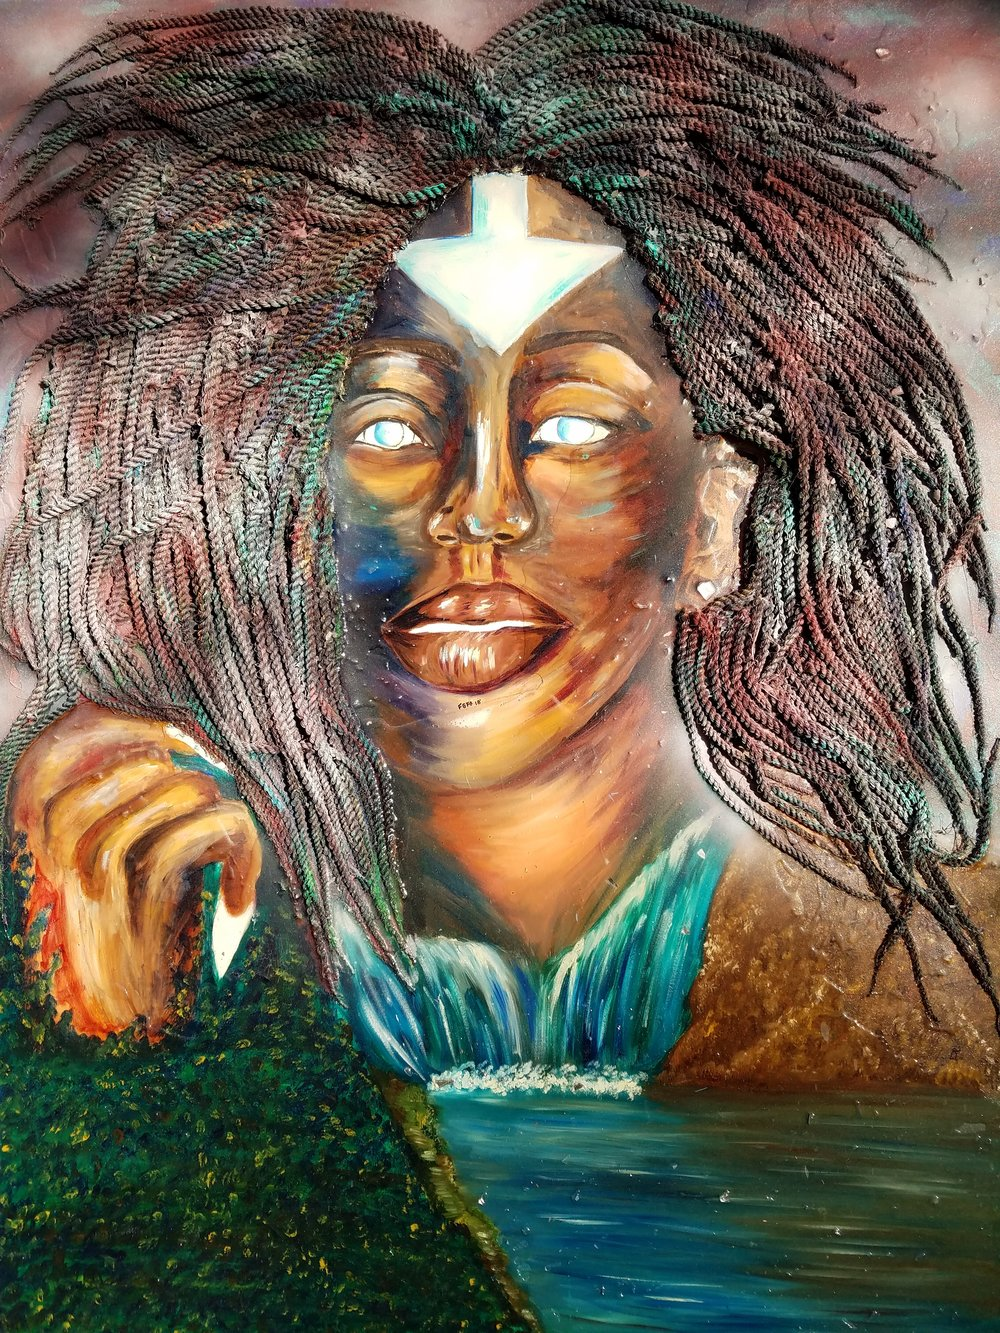 1 3.Fefe_Woman Through The Land_2018_multimedia_3,000.jpg